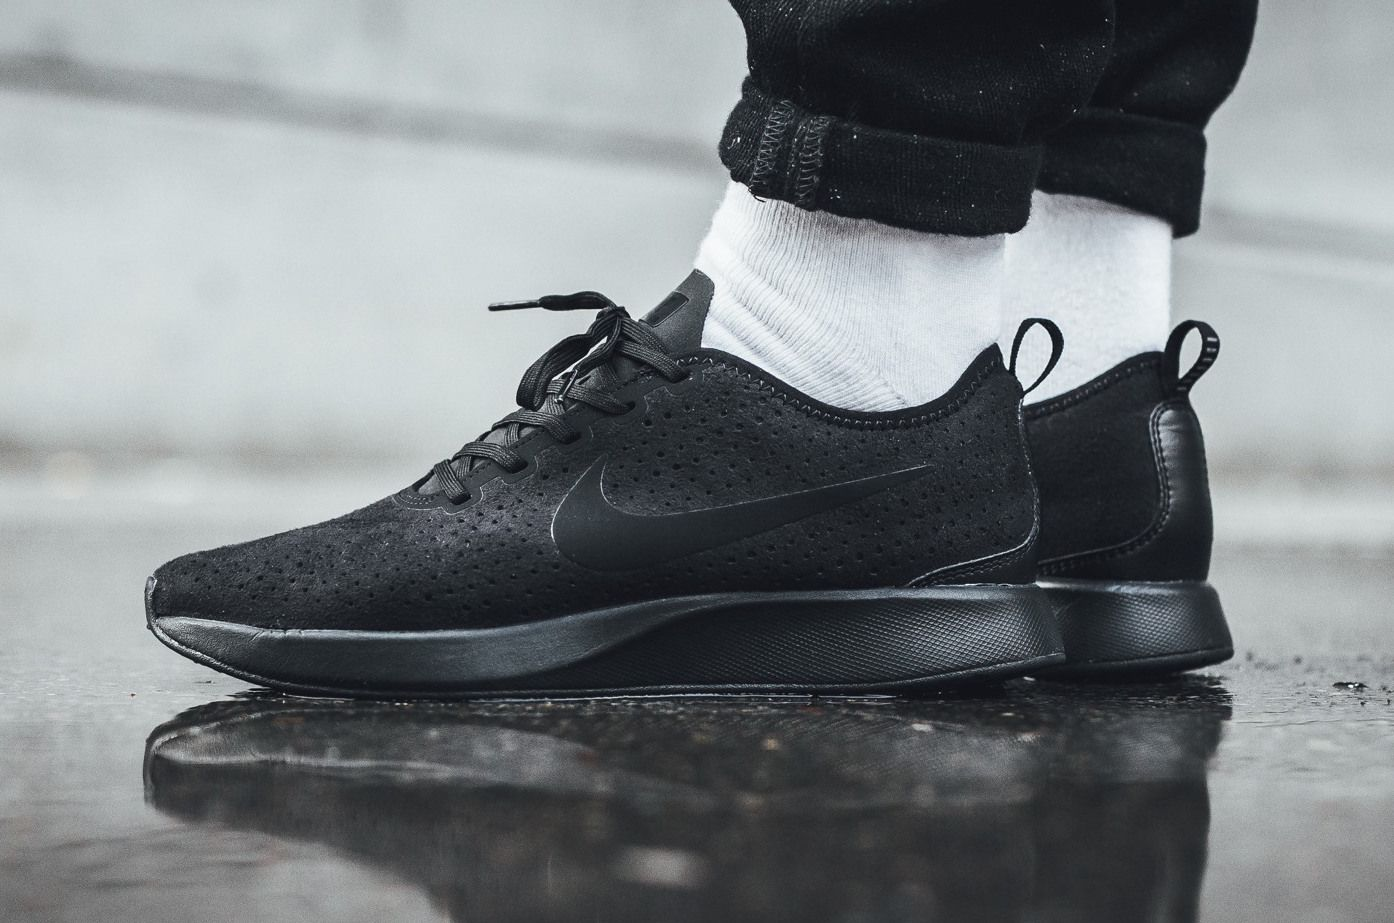 Look Out For The Nike Dualtone Racer Premium Triple Black